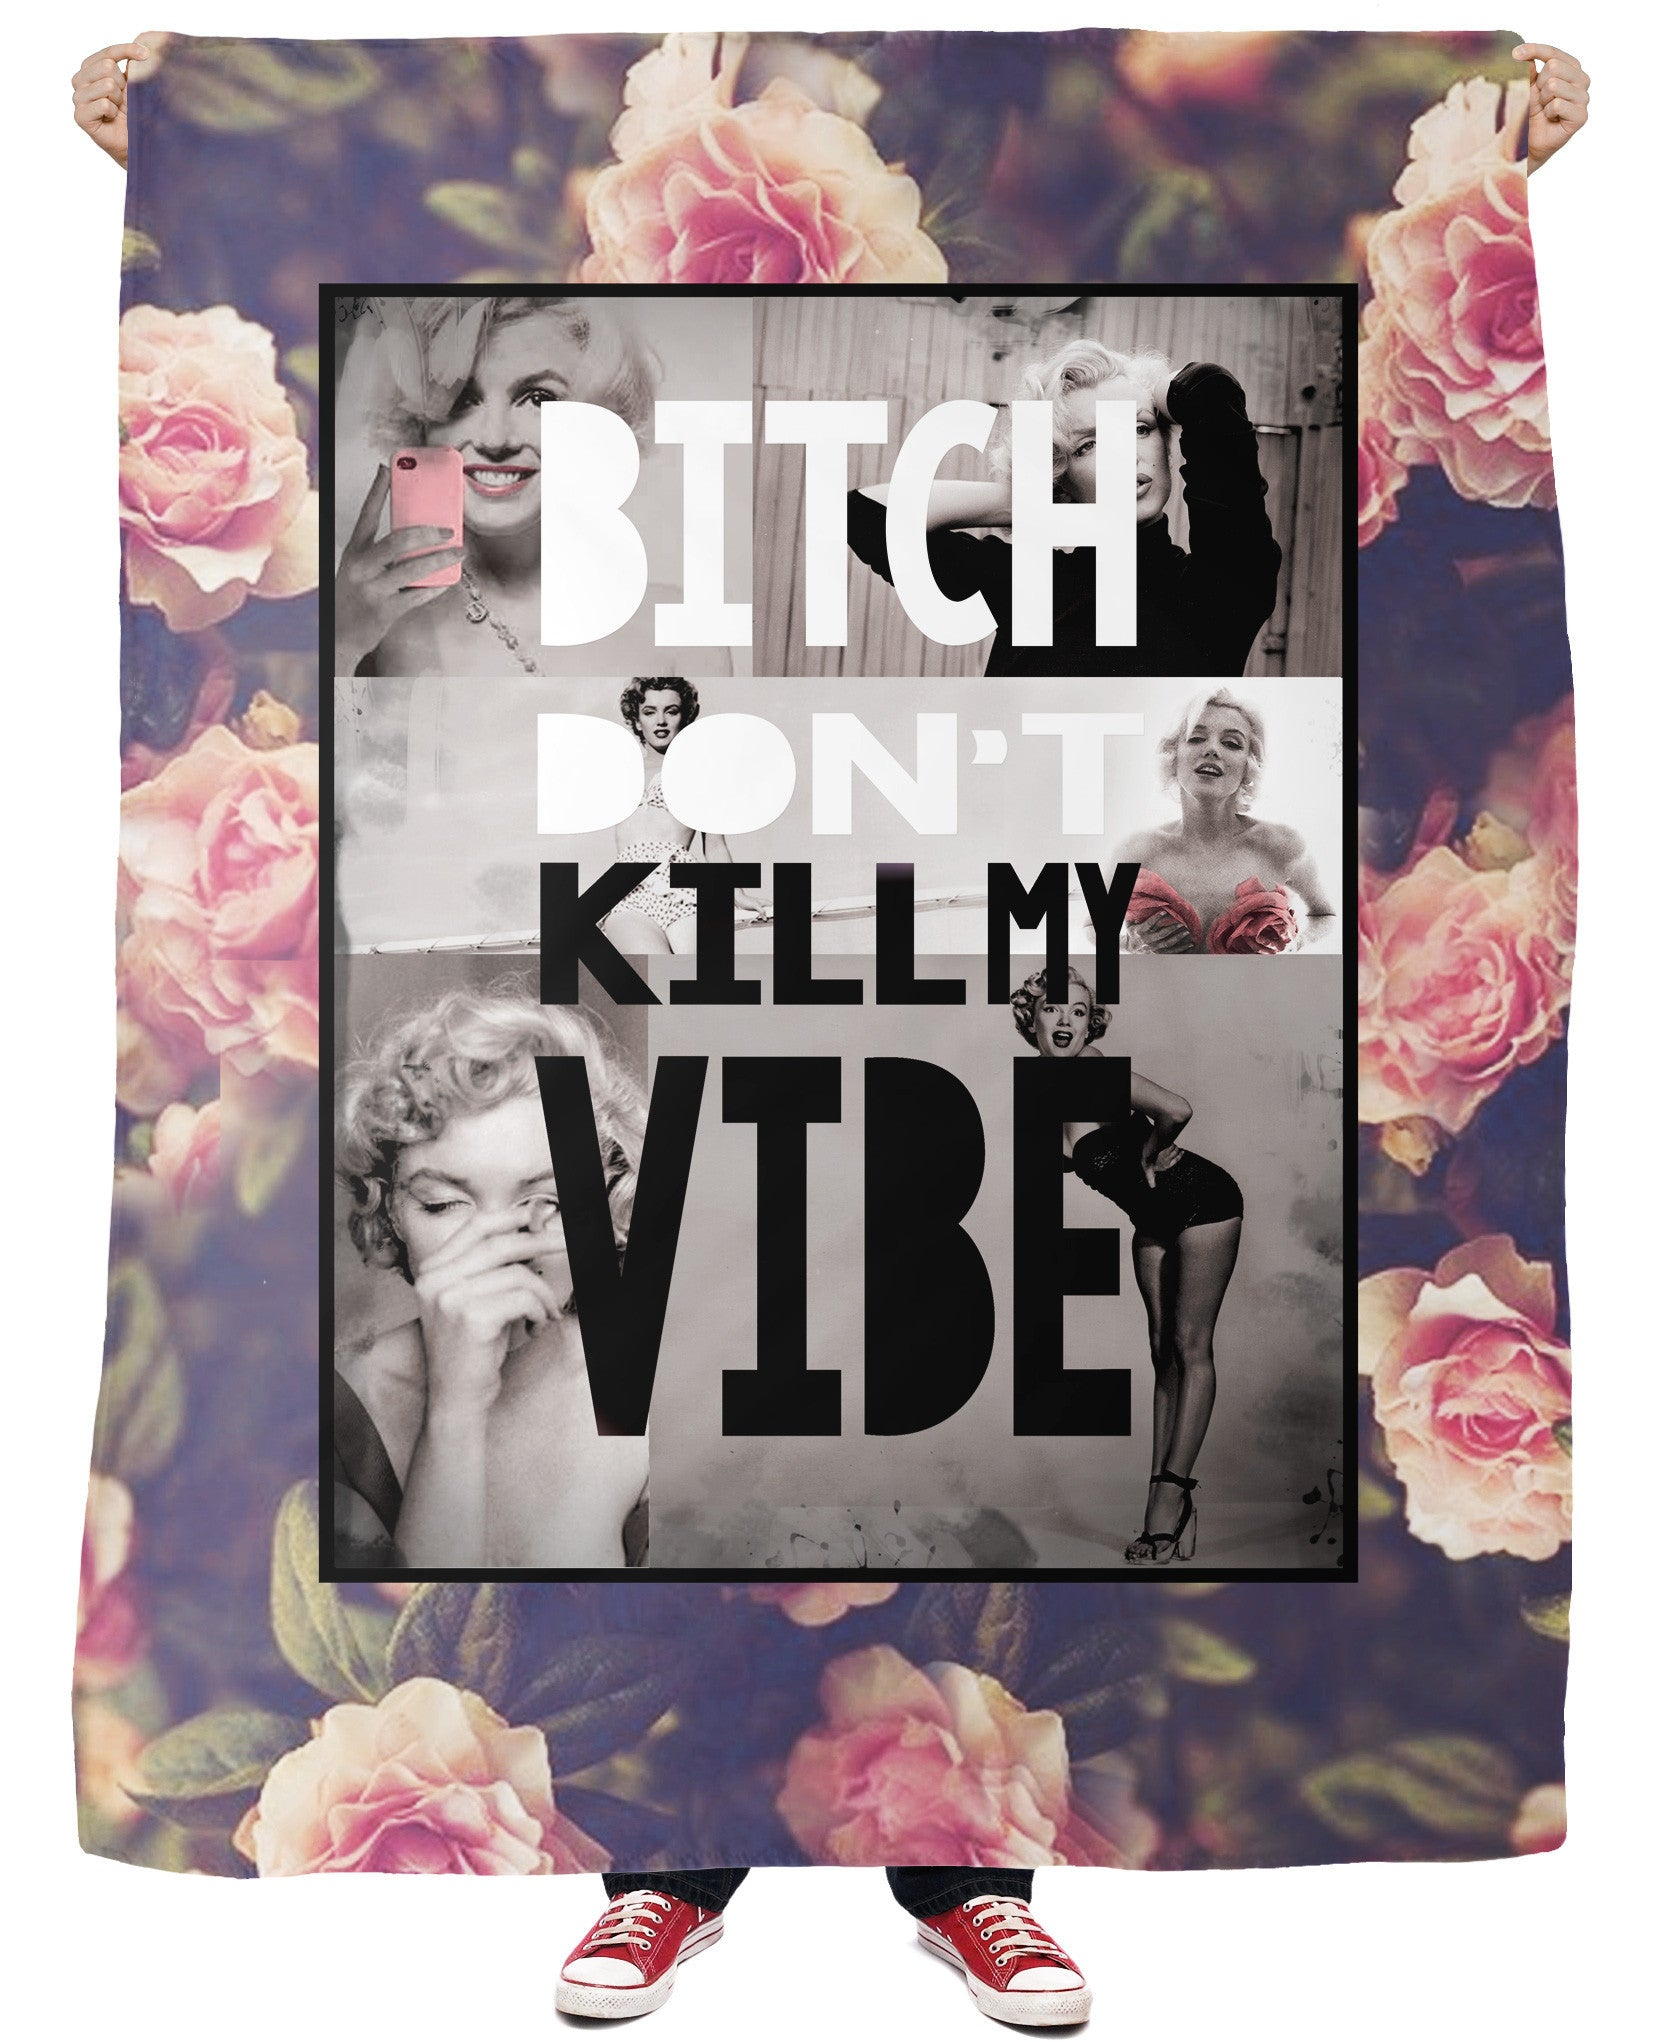 Bitch Don't Kill My Vibe Fleece Blanket - TShirtsRUS.co